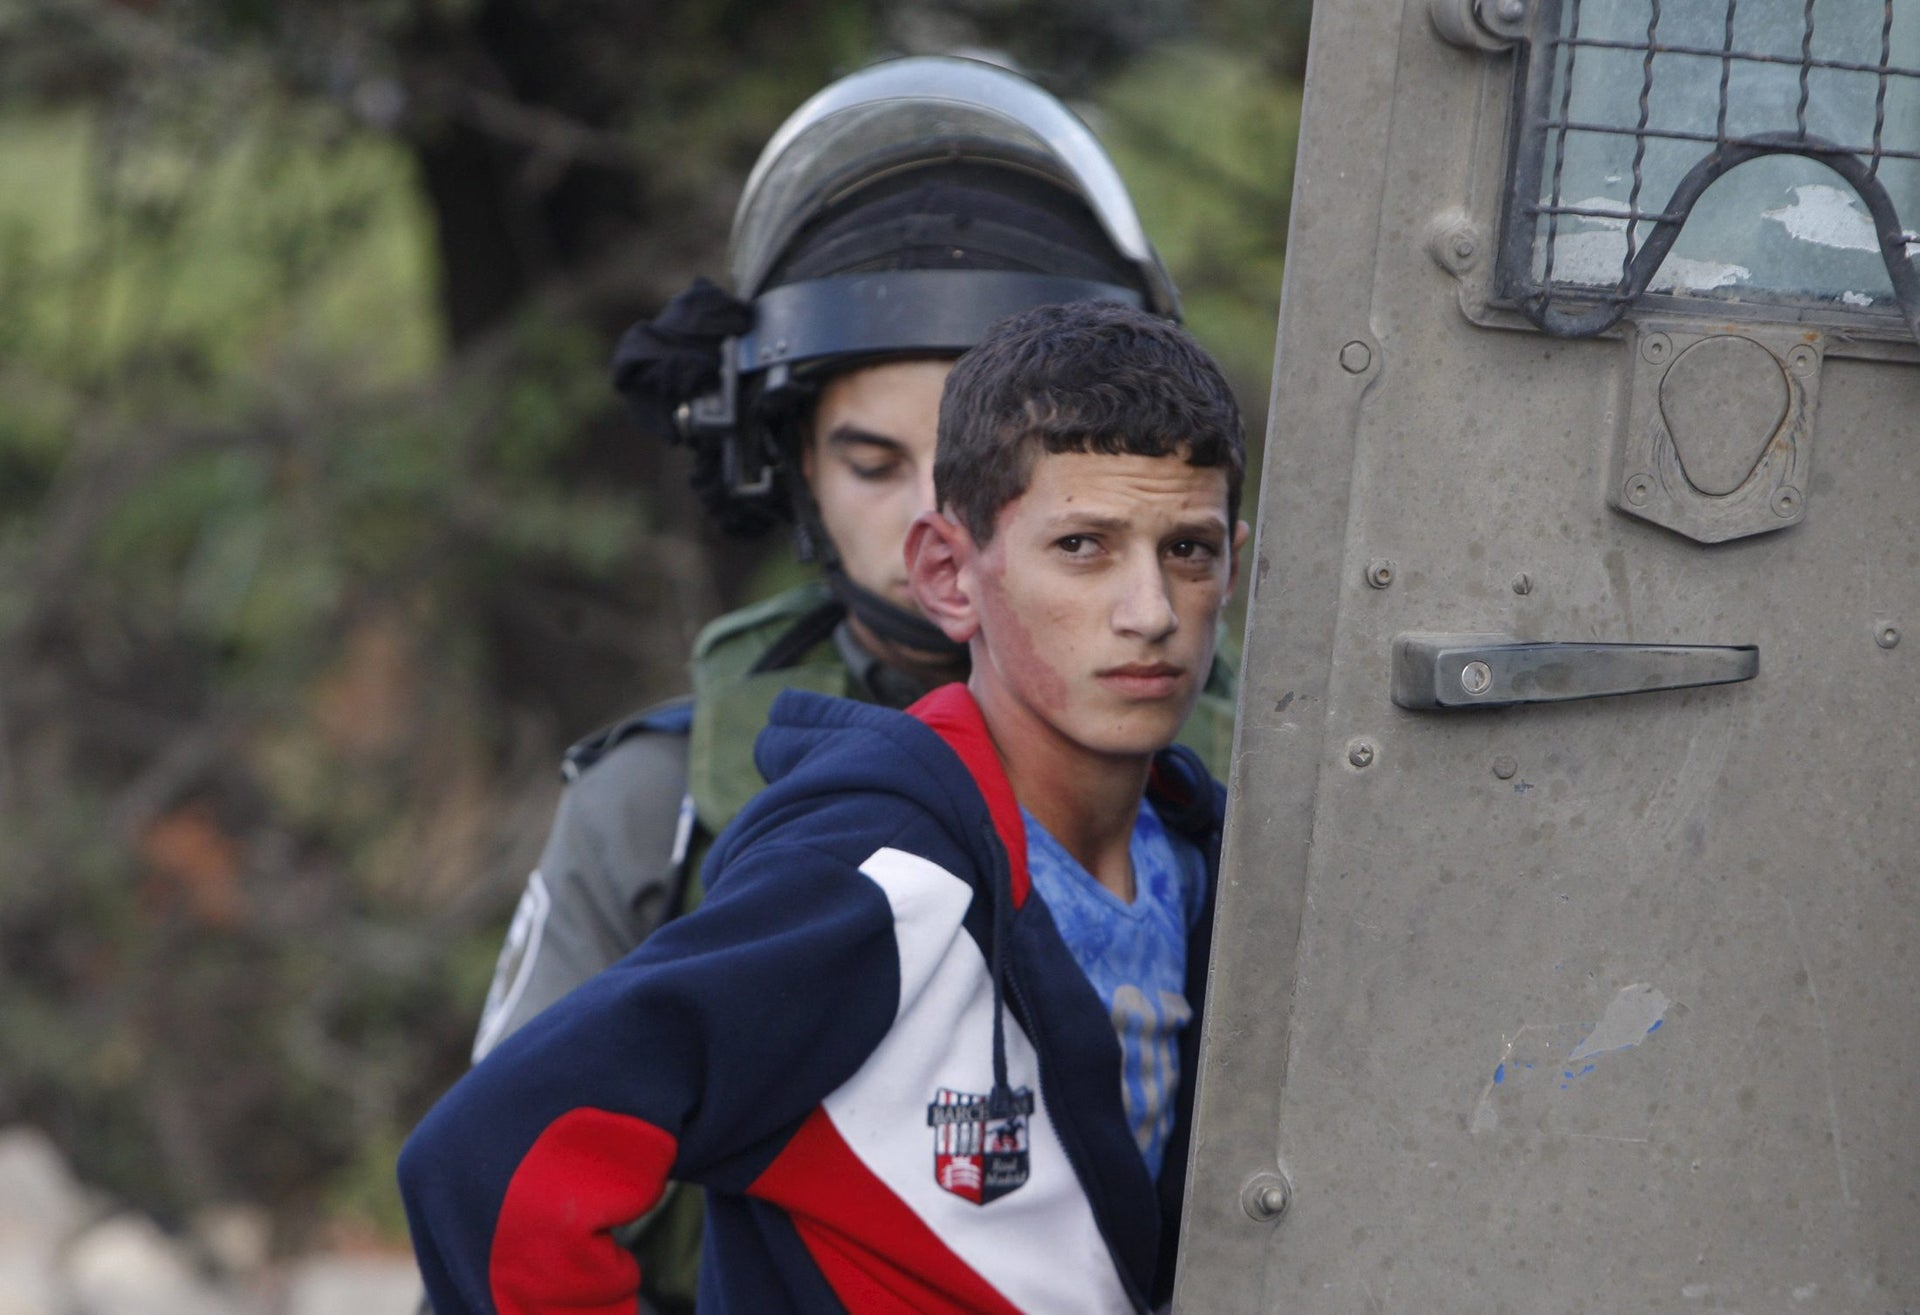 A Border Policeman detaining a Palestinian youth near Hebron in 2015.